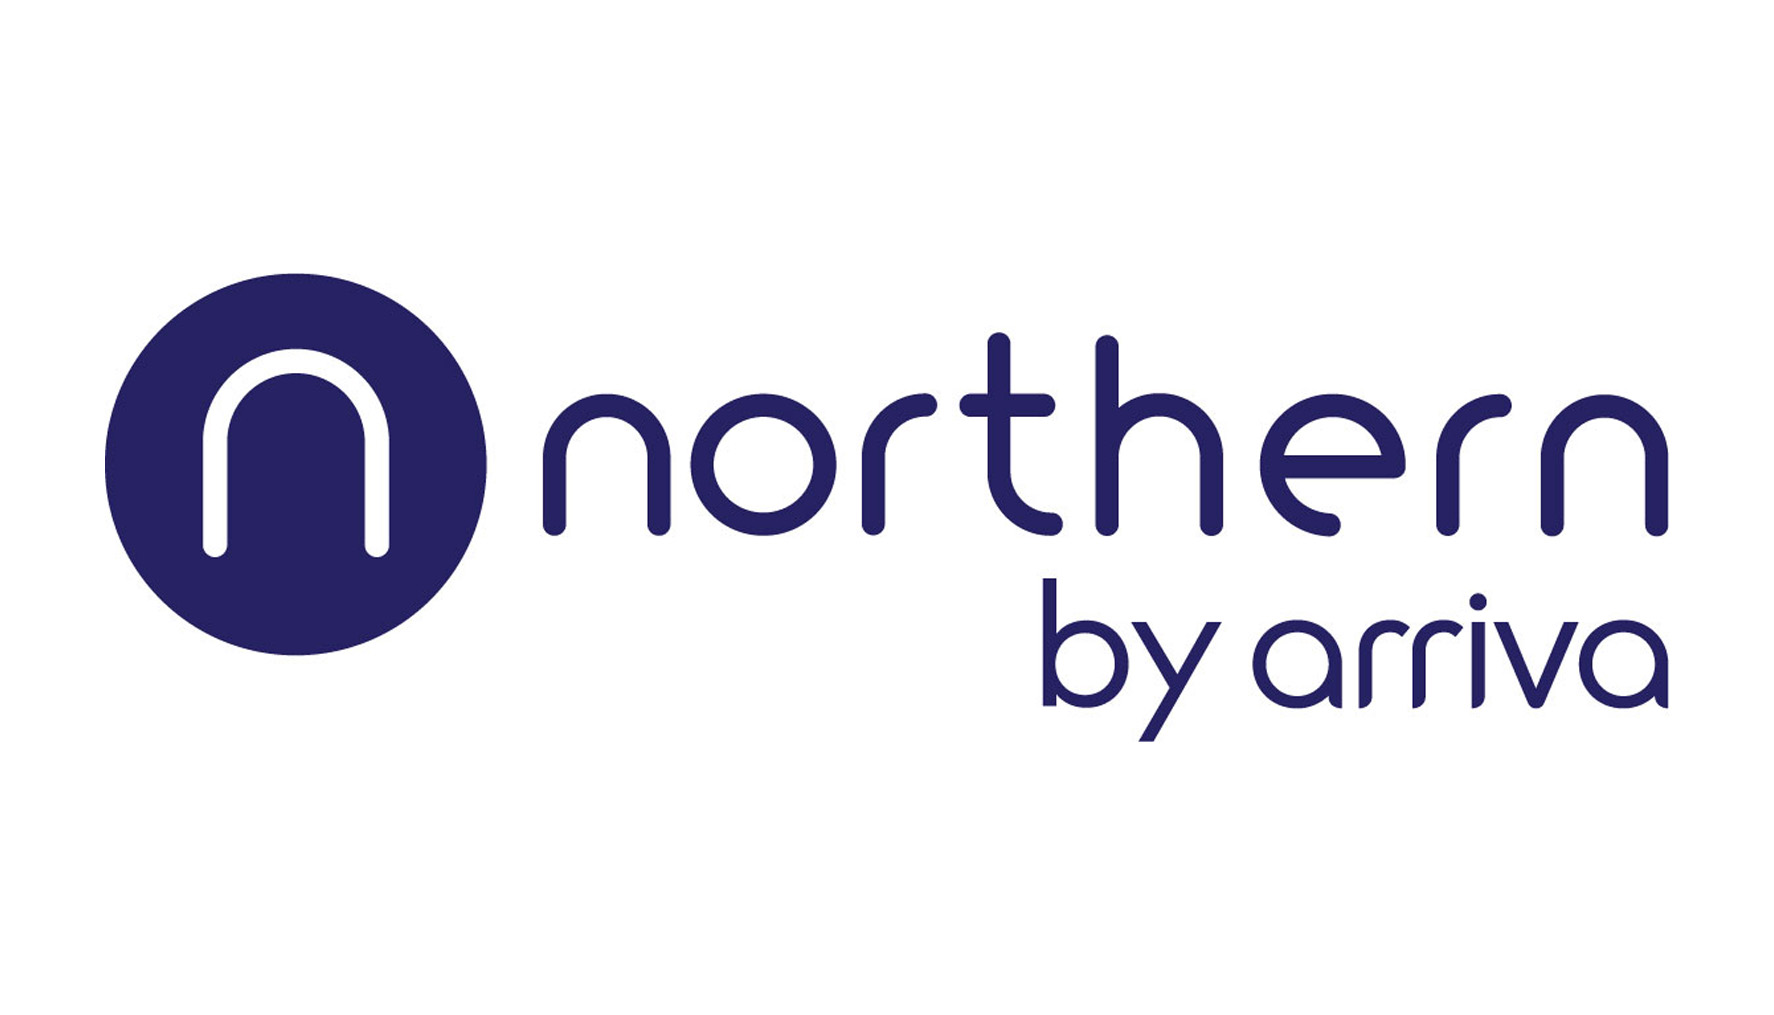 Northern by Arriva